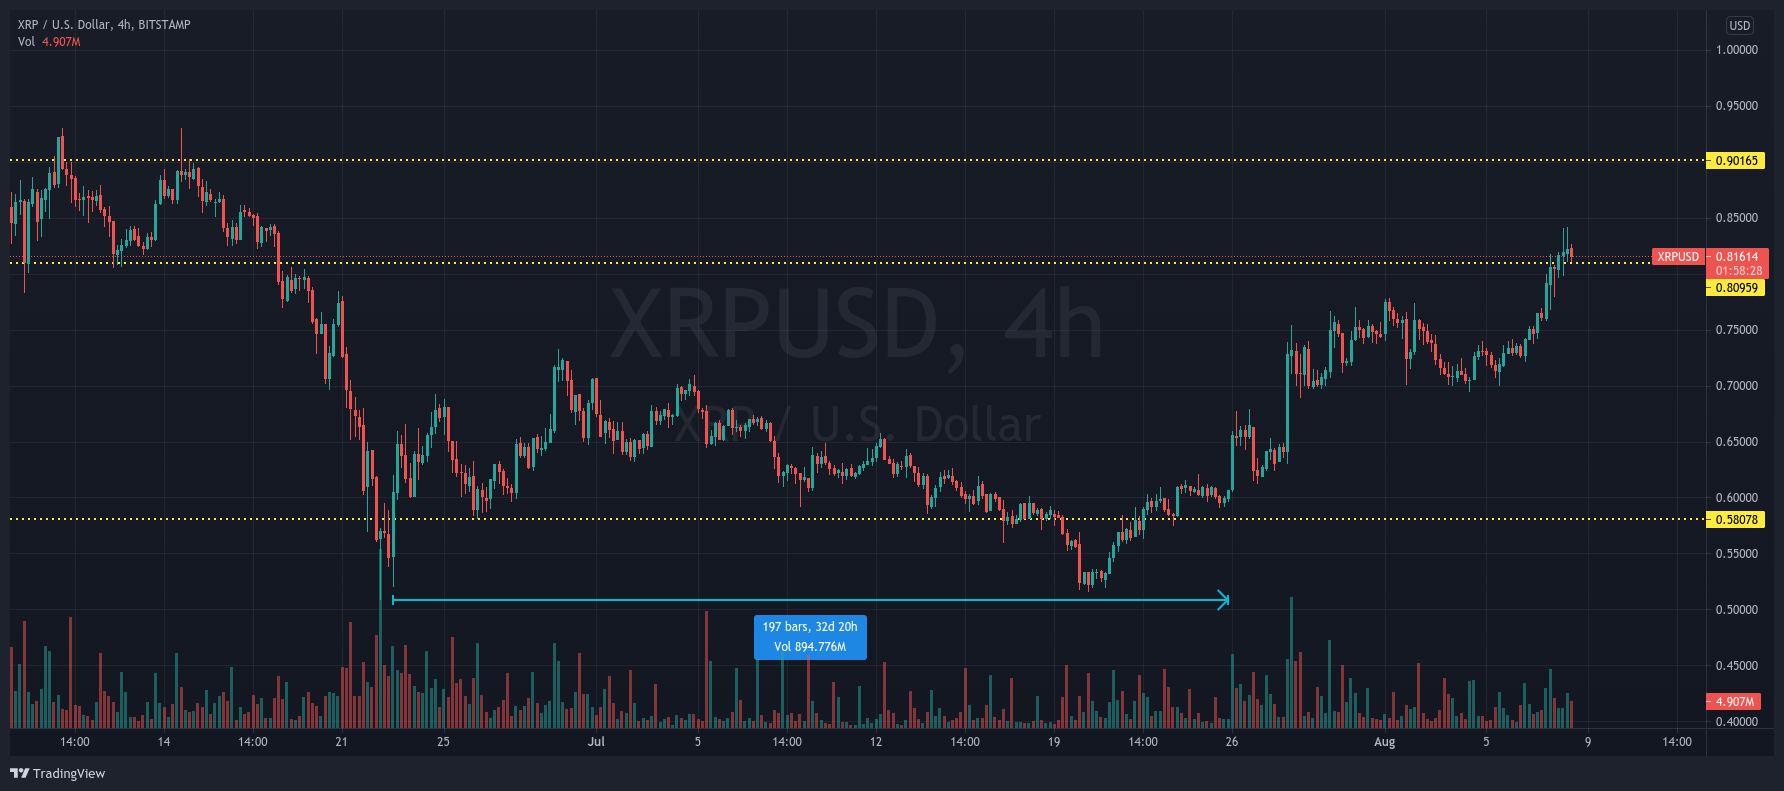 XRP/USD 4-hours chart showing the 1-month consolidation of XRP - xrp reach USD 1?